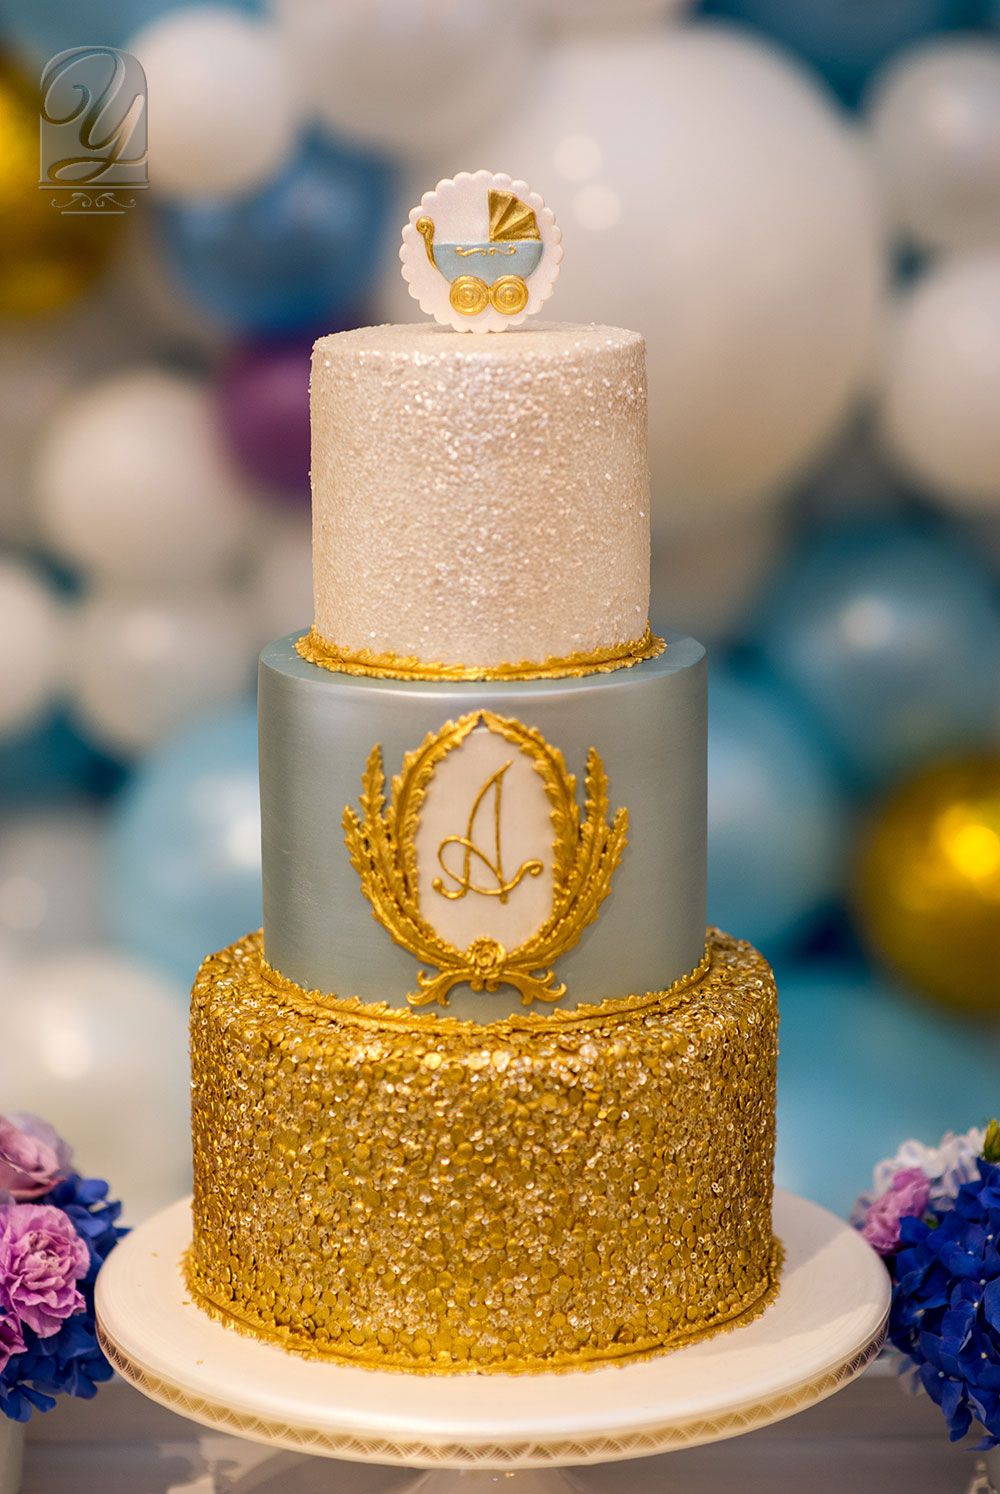 Luxury Bespoke Cake for Baby Shower from Unique Cakes by Yevnig at Claridge's, London